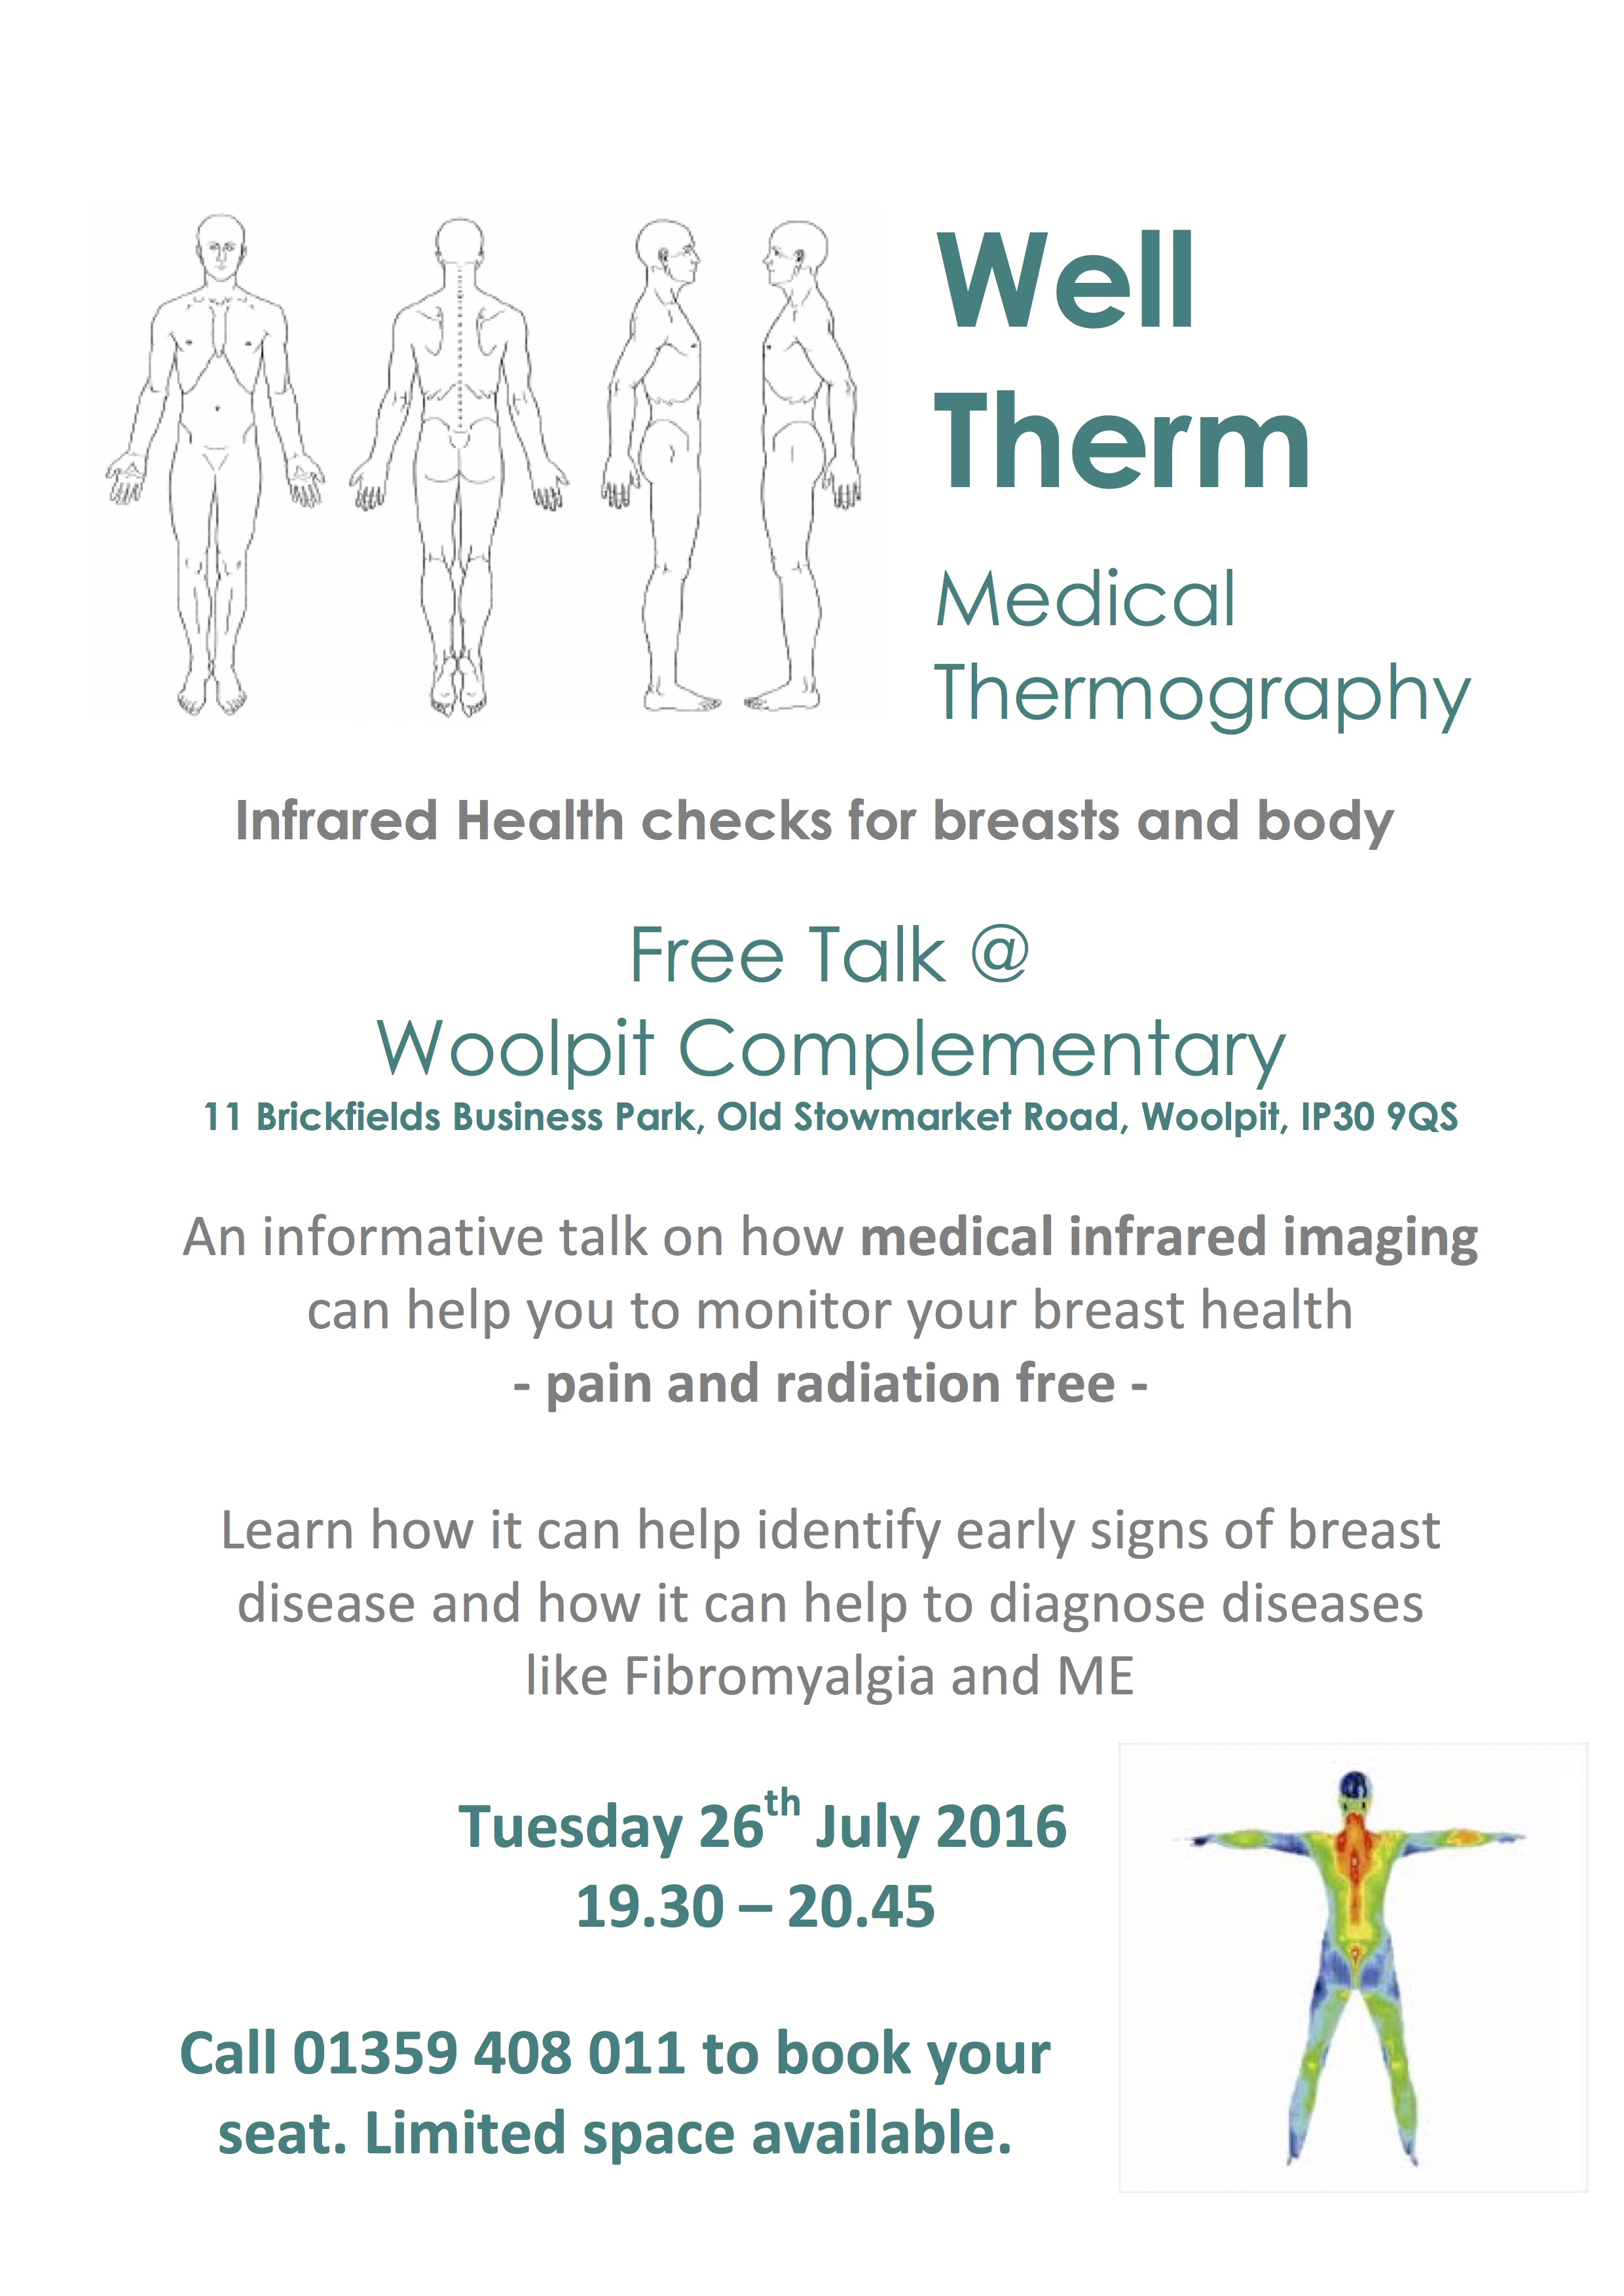 Medical Thermography - Woolpit Complementary